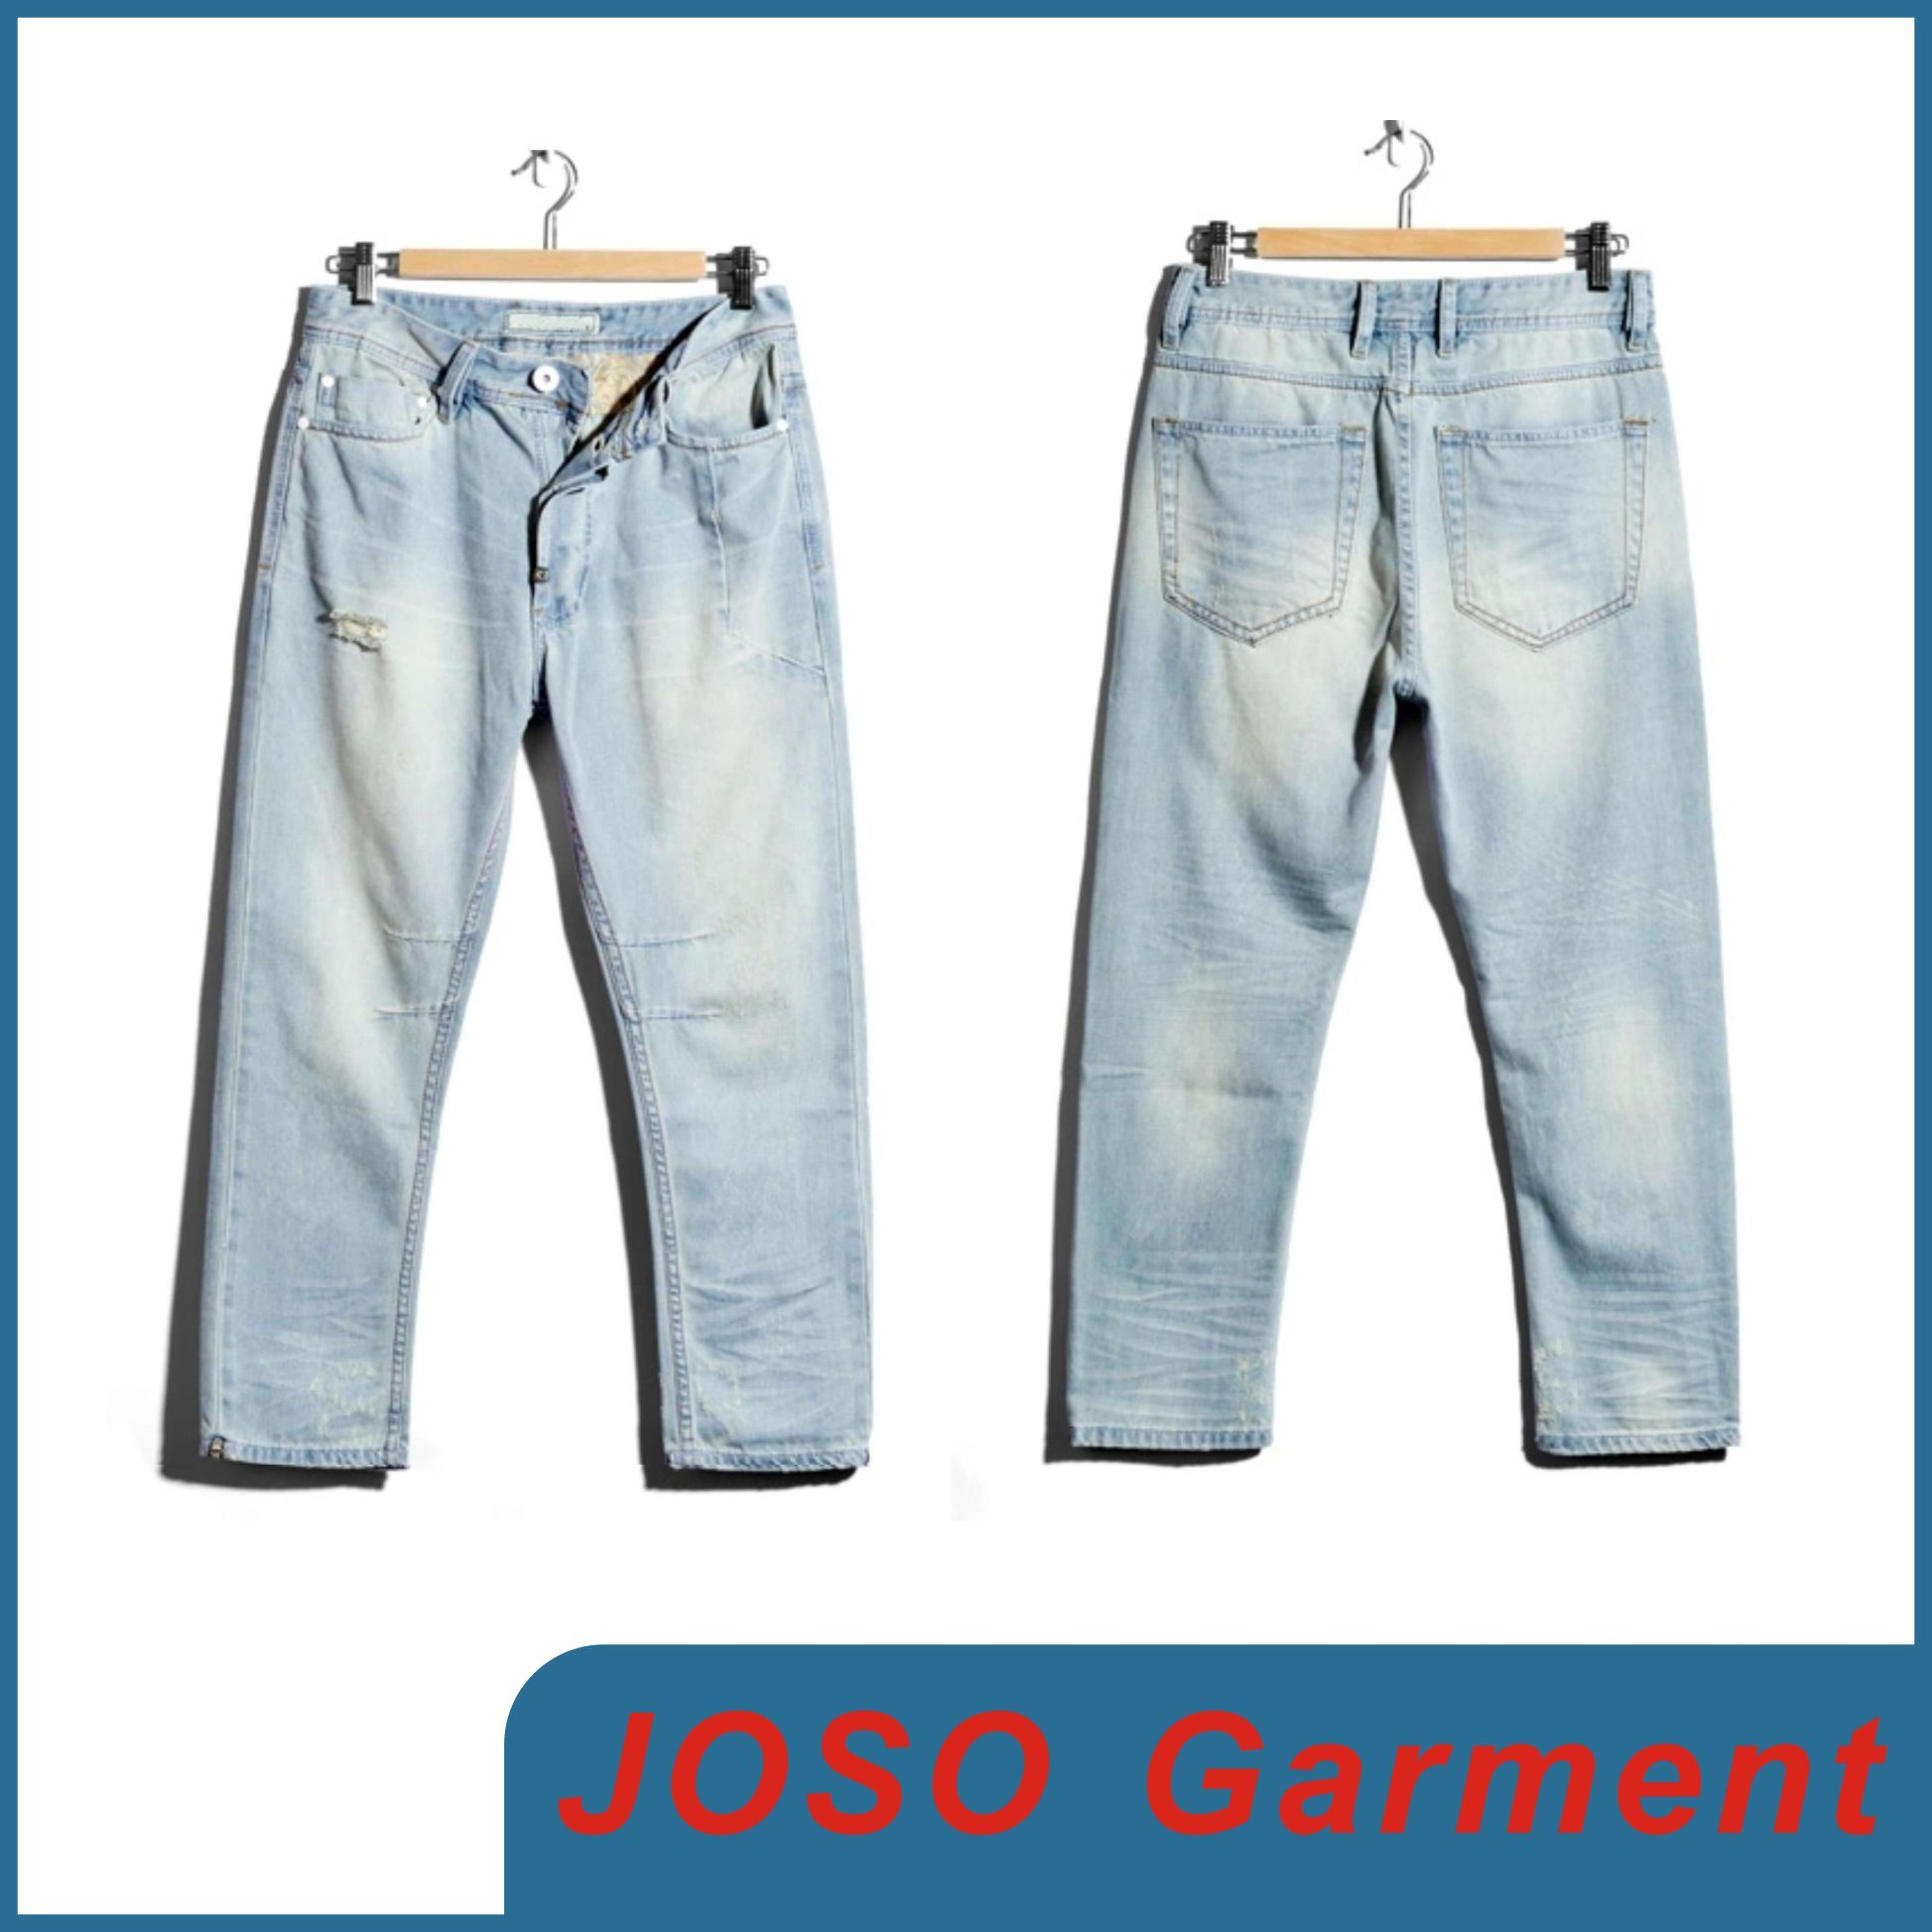 China Men Destroyed Light Wash Jeans (JC3067) Photos & Pictures ...